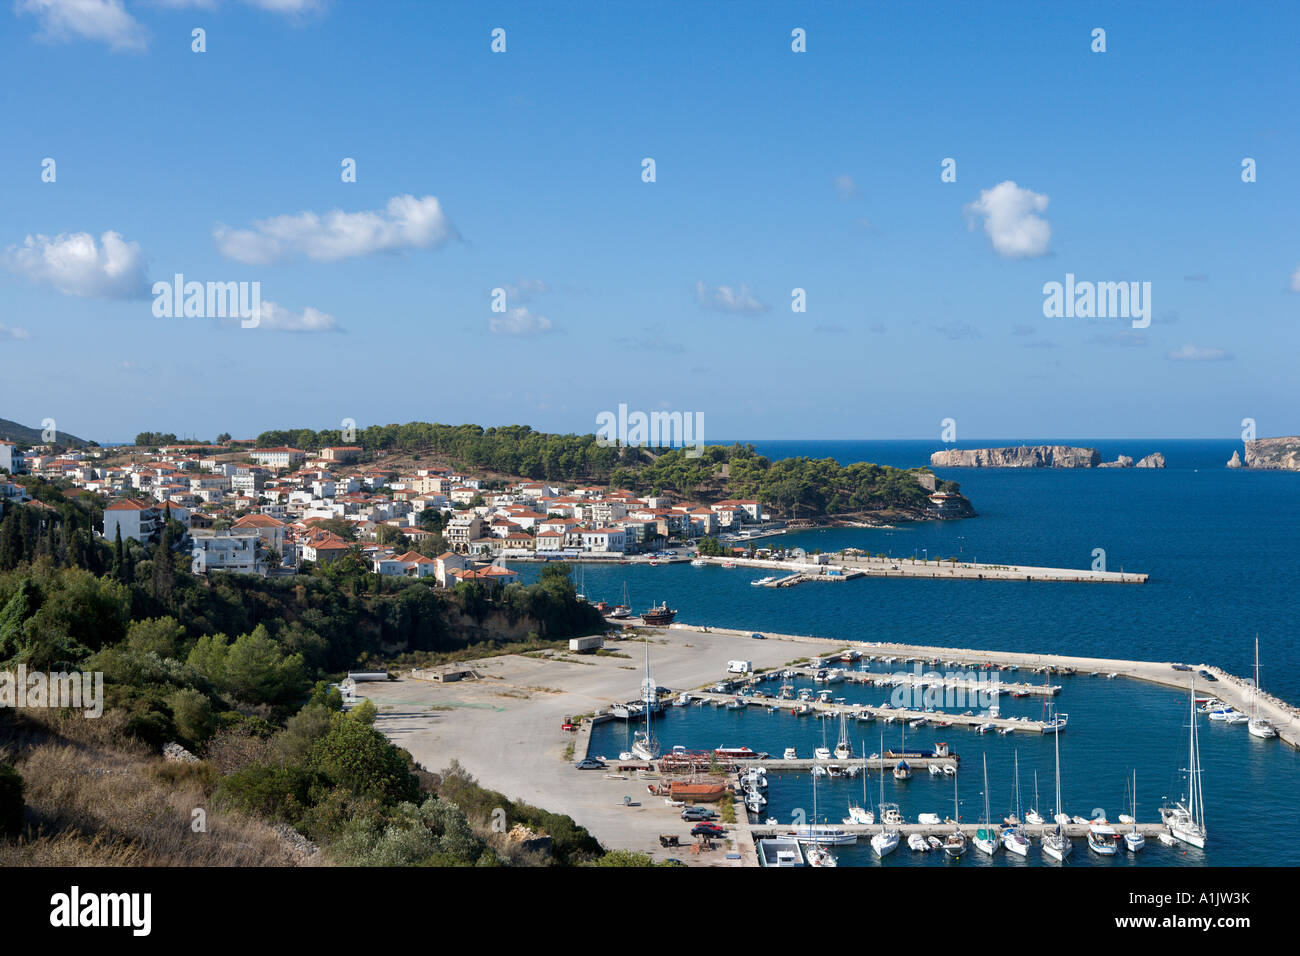 View over the harbour at Pylos, near Yialova, Messinia, Peloponnese, Greece - Stock Image